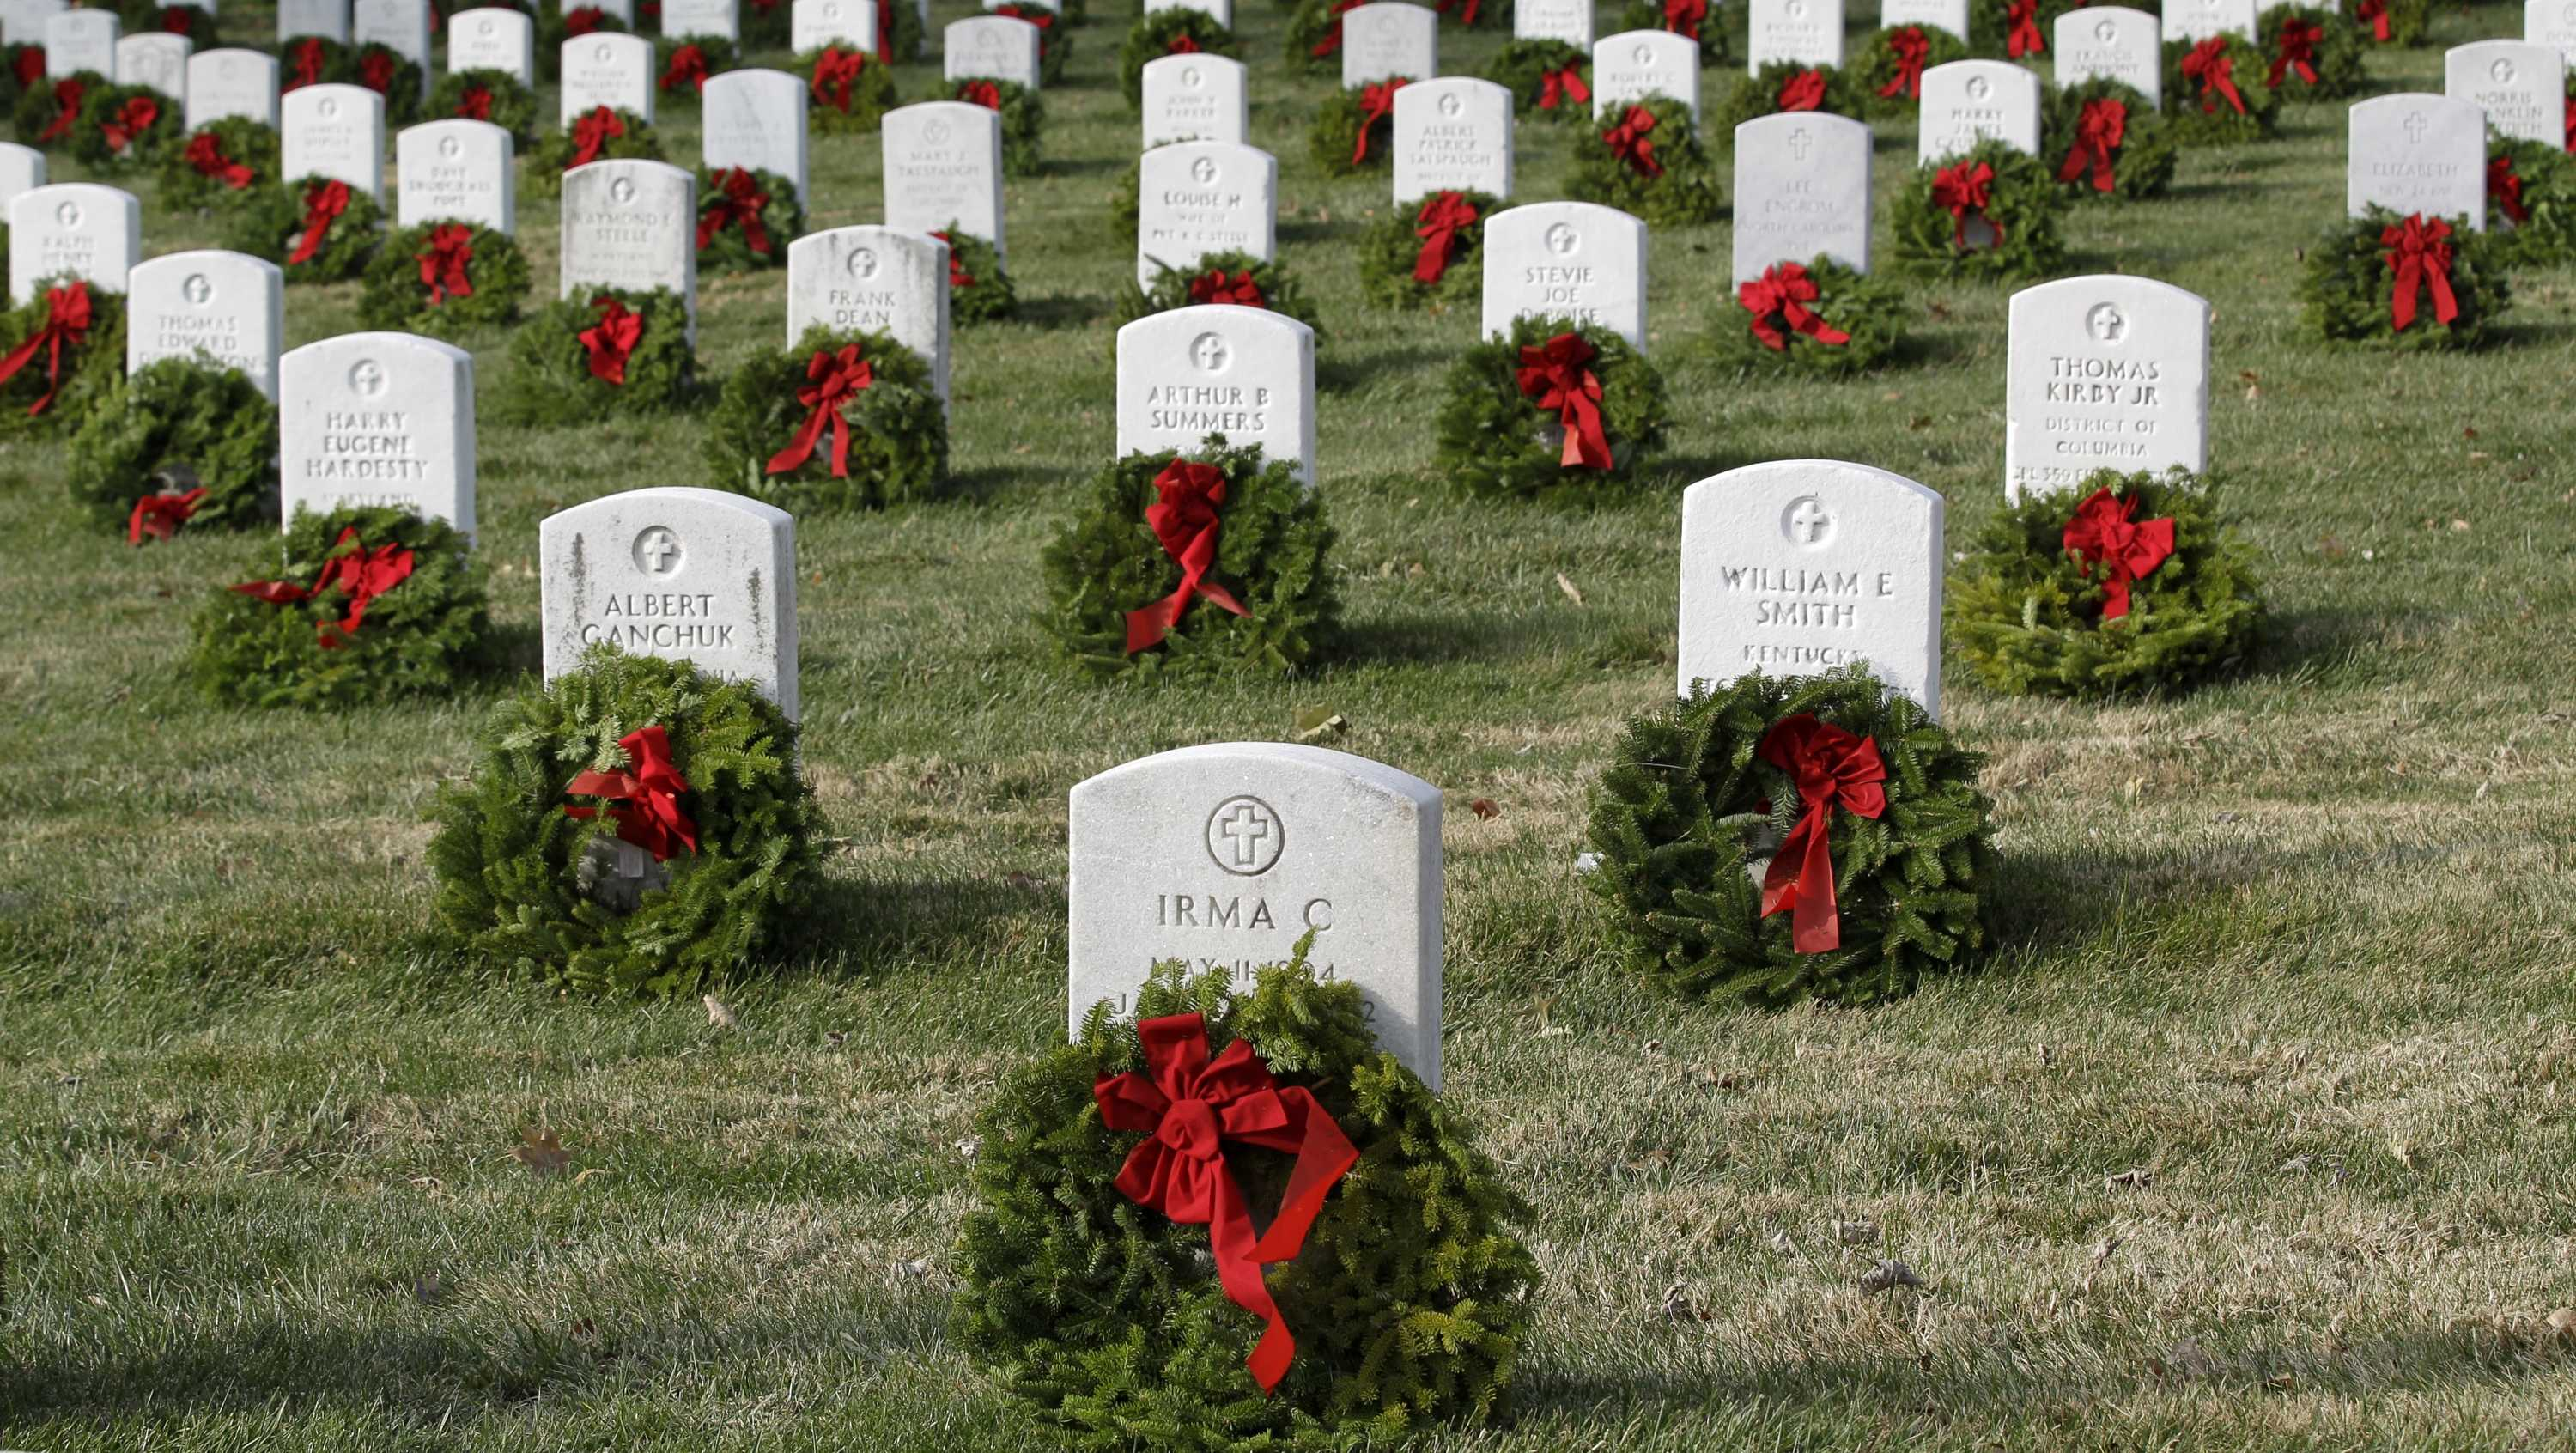 Holiday wreaths adorn tombstones during Wreaths Across America's 150th anniversary, Saturday, Dec. 13, 2014, at Arlington National Cemetery in Arlington, Va.